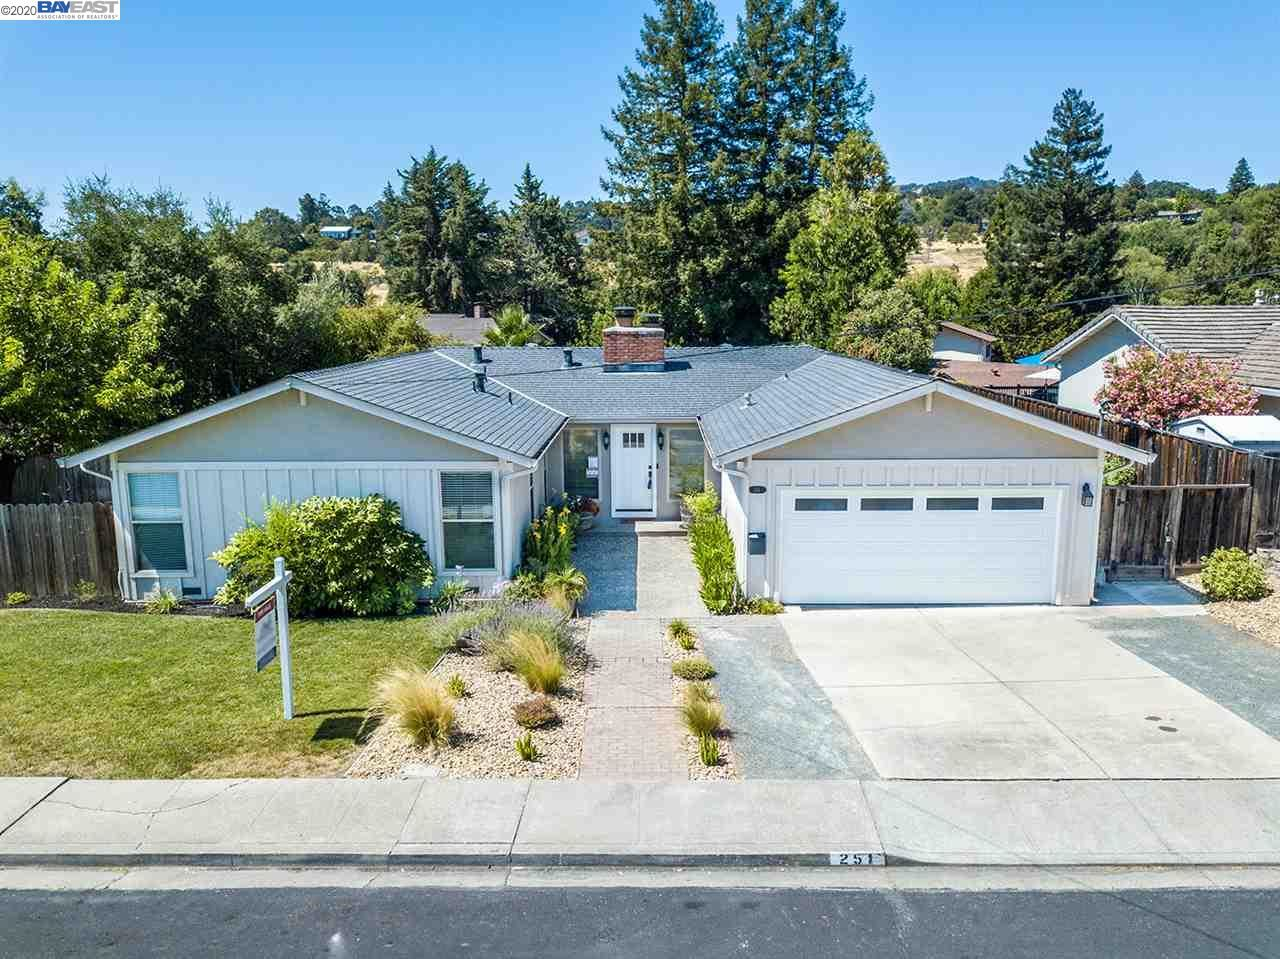 Photo of 251 Donegal Way, MARTINEZ, CA 94553 (MLS # 40911519)